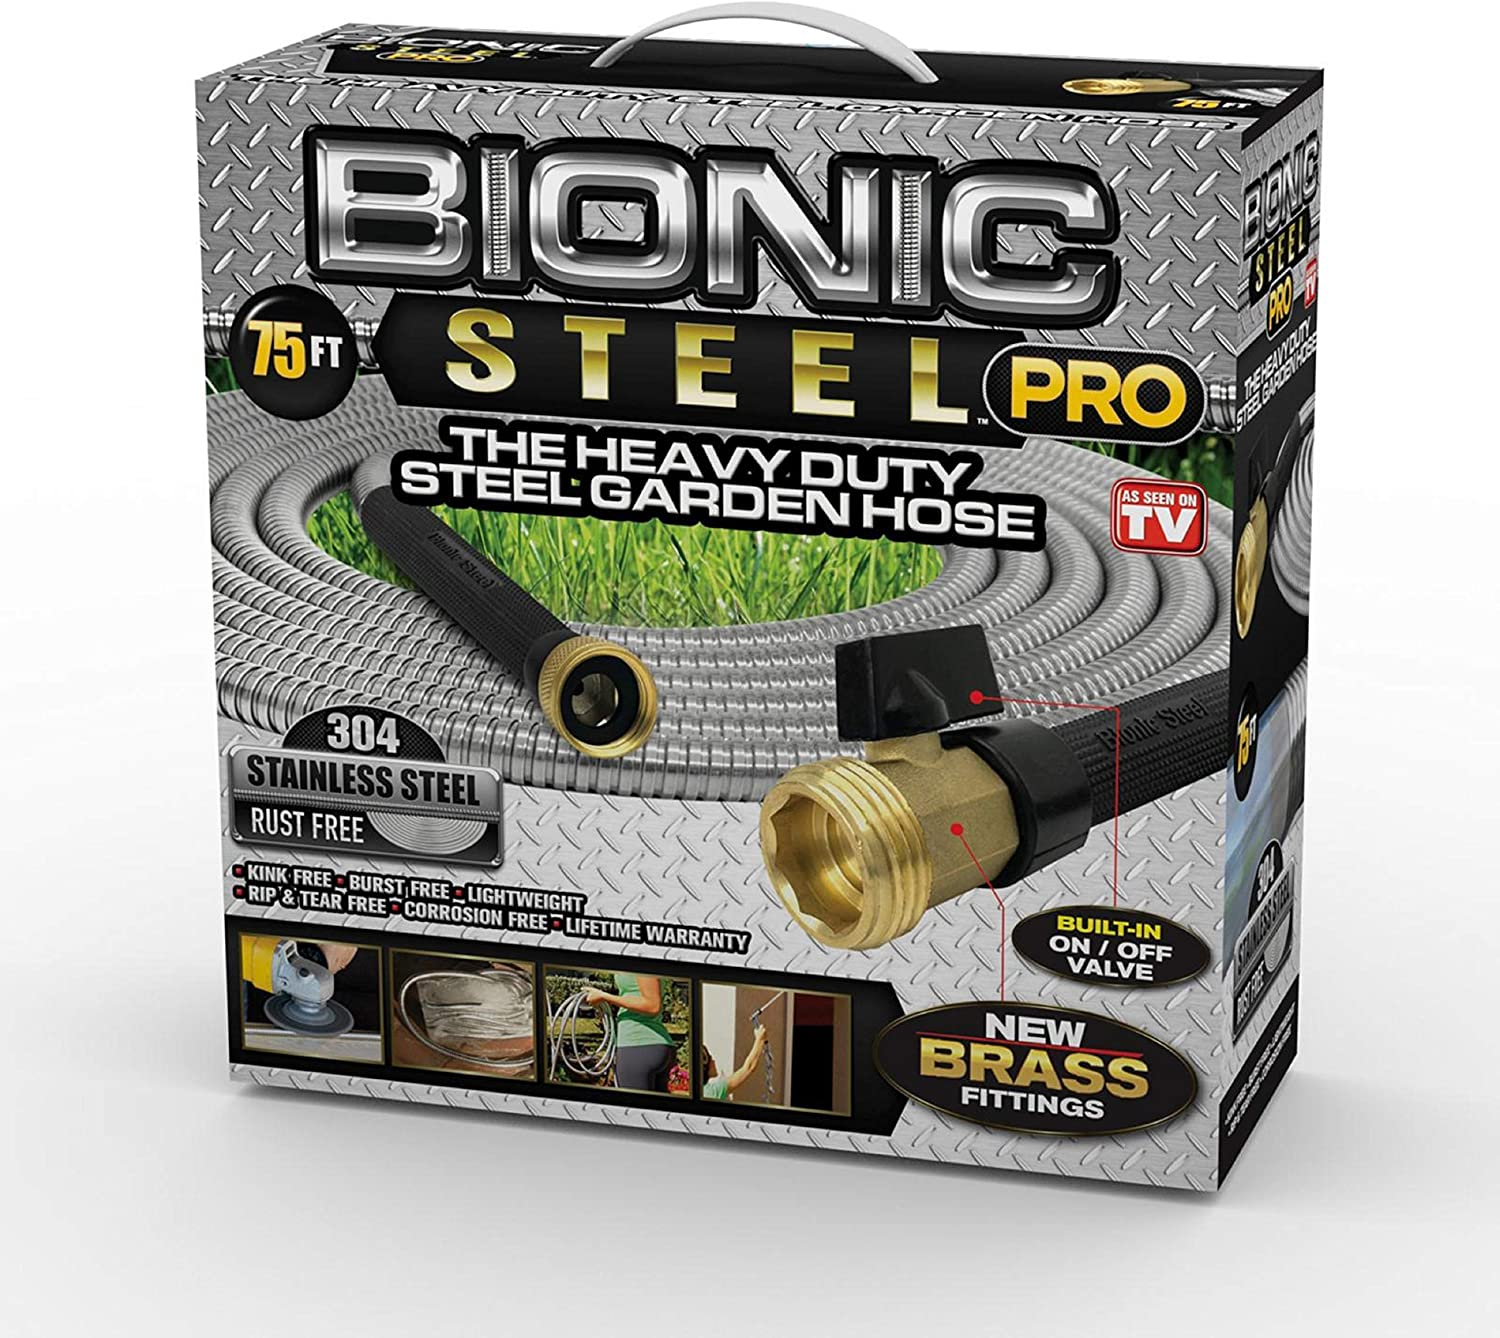 Bionic Steel PRO Garden Hose - 304 Stainless Steel Metal 75 Foot Garden Hose – Heavy Duty Lightweight, Kink-Free, and Stronger Than Ever with Brass Fittings and On/Off Valve – 2019 Model